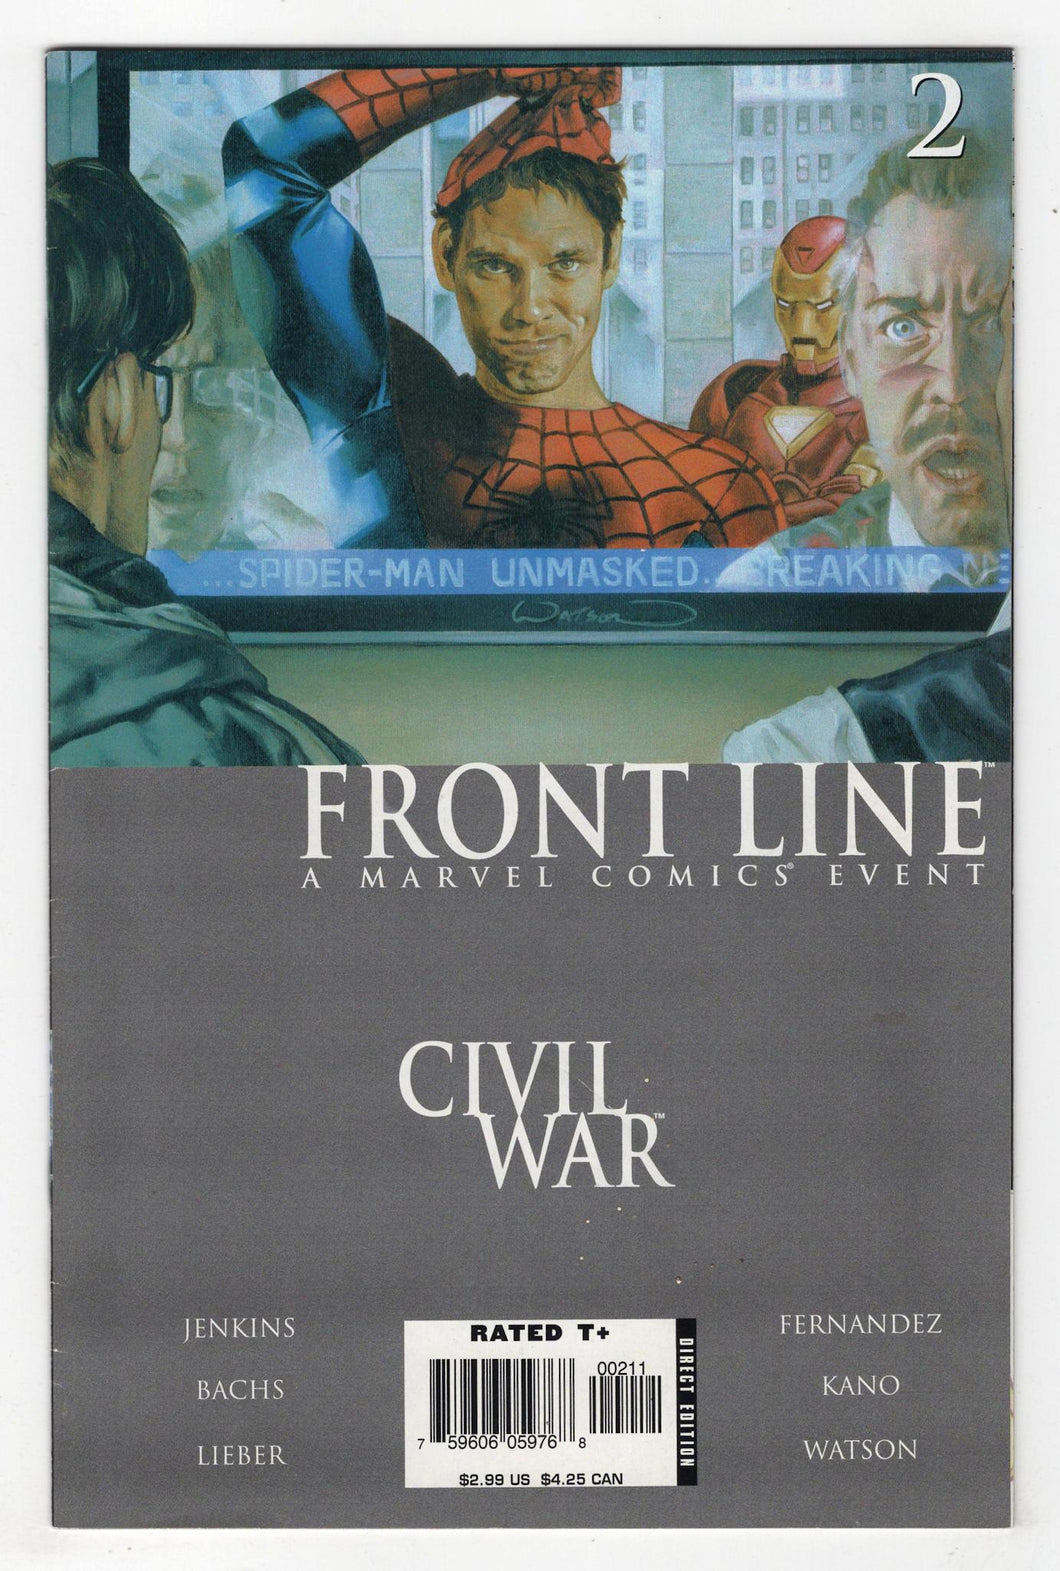 Civil War Frontline #2 Cover Front